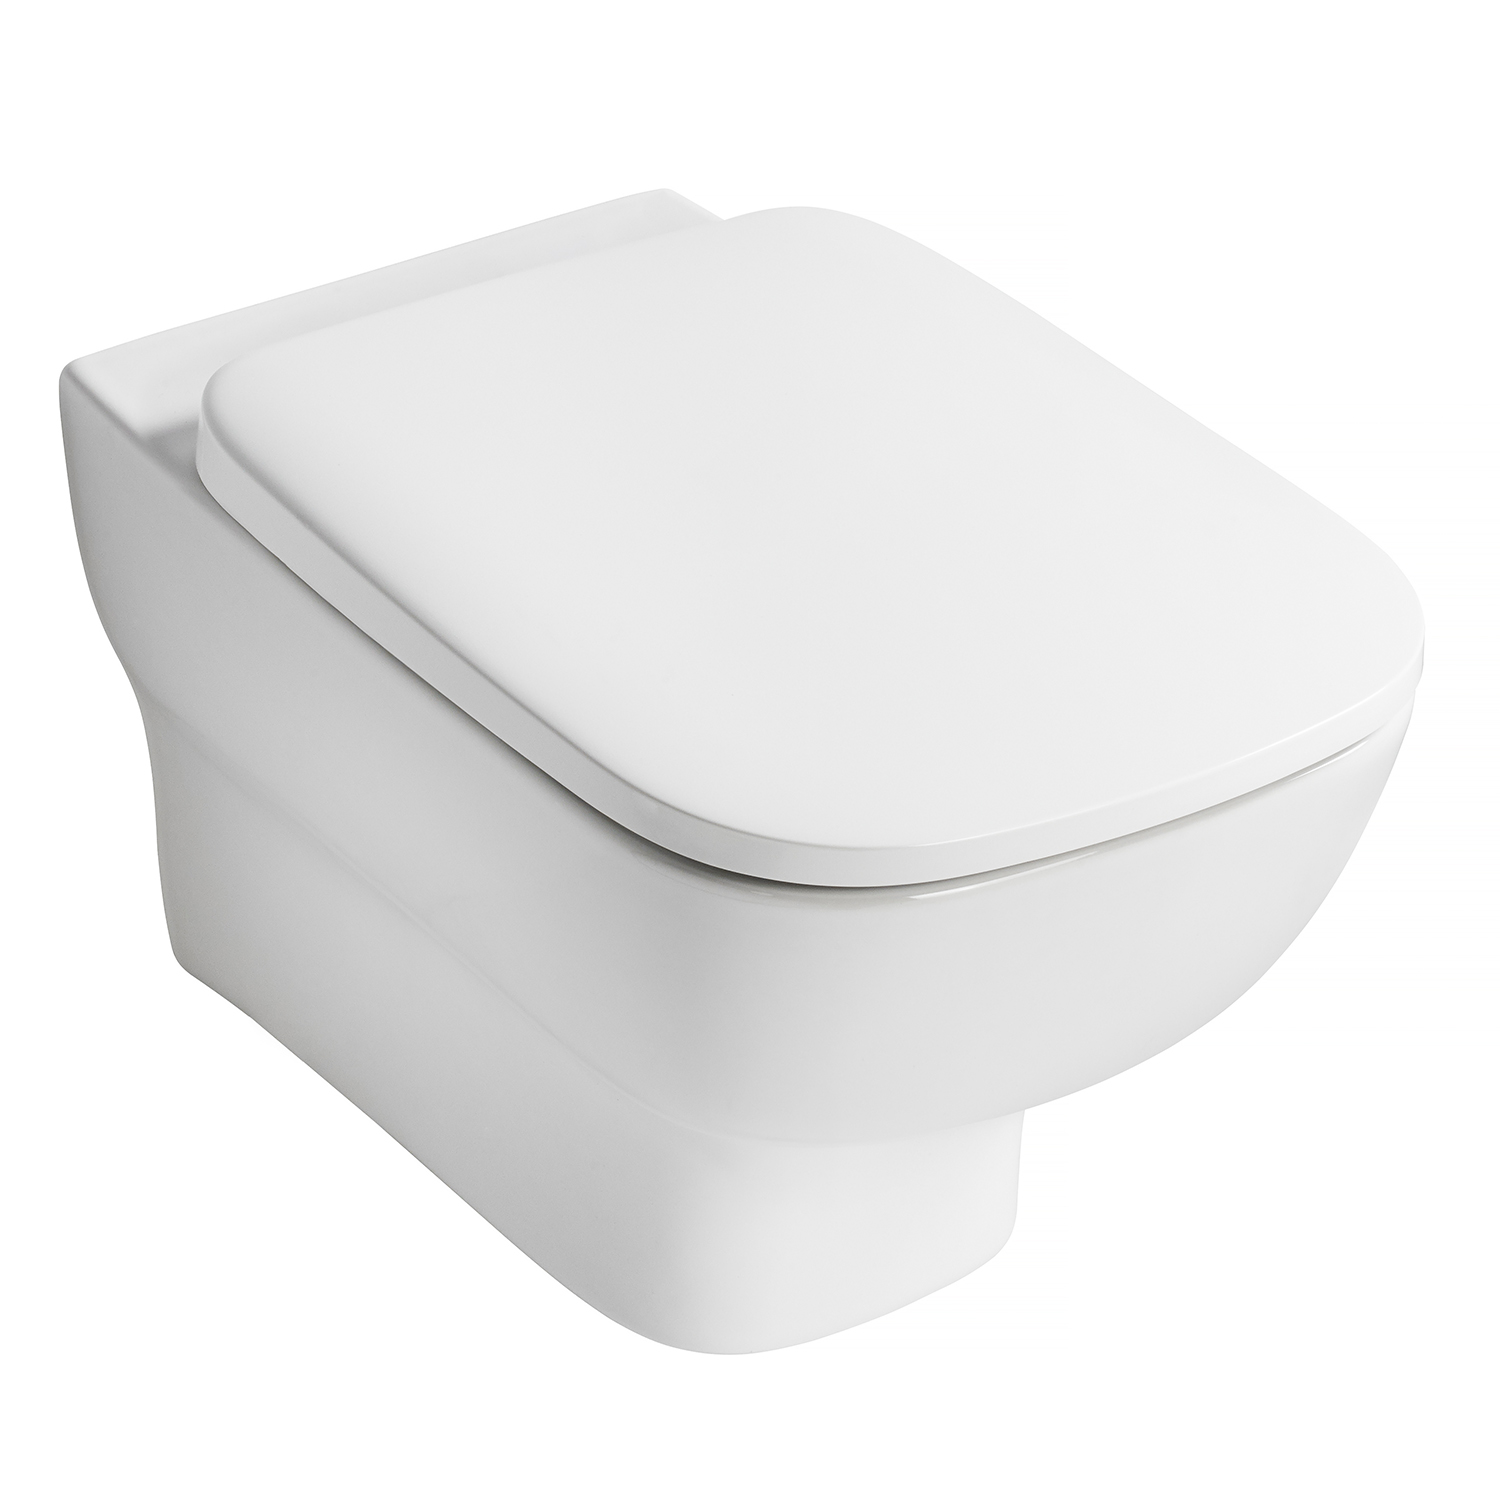 Studio Echo Wall Mounted Wc Suite Wall Hung Toilets